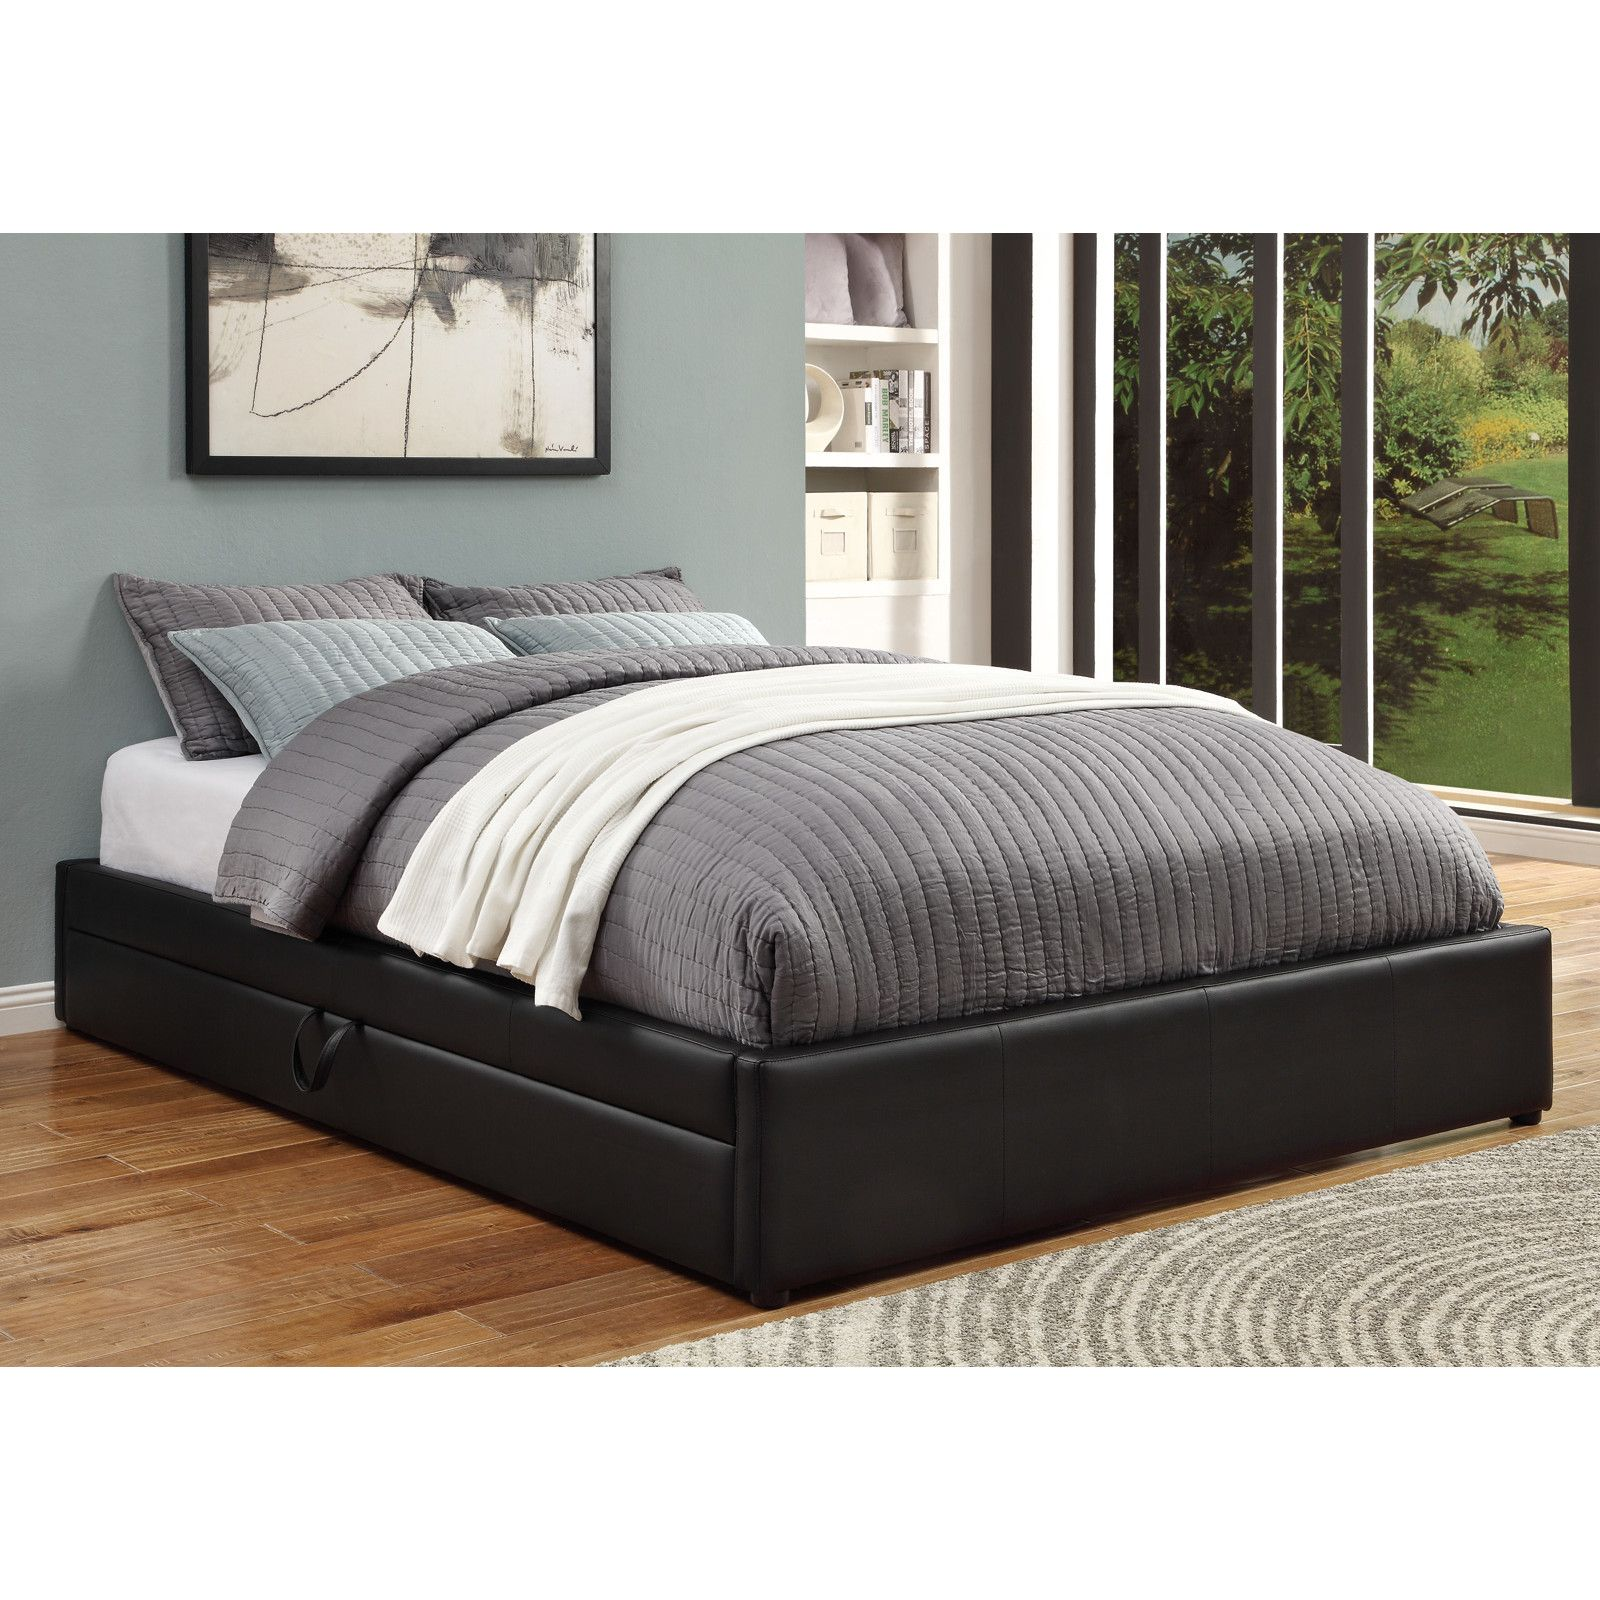 Upholstered Storage Platform Bed Storage Bed Queen Upholstered